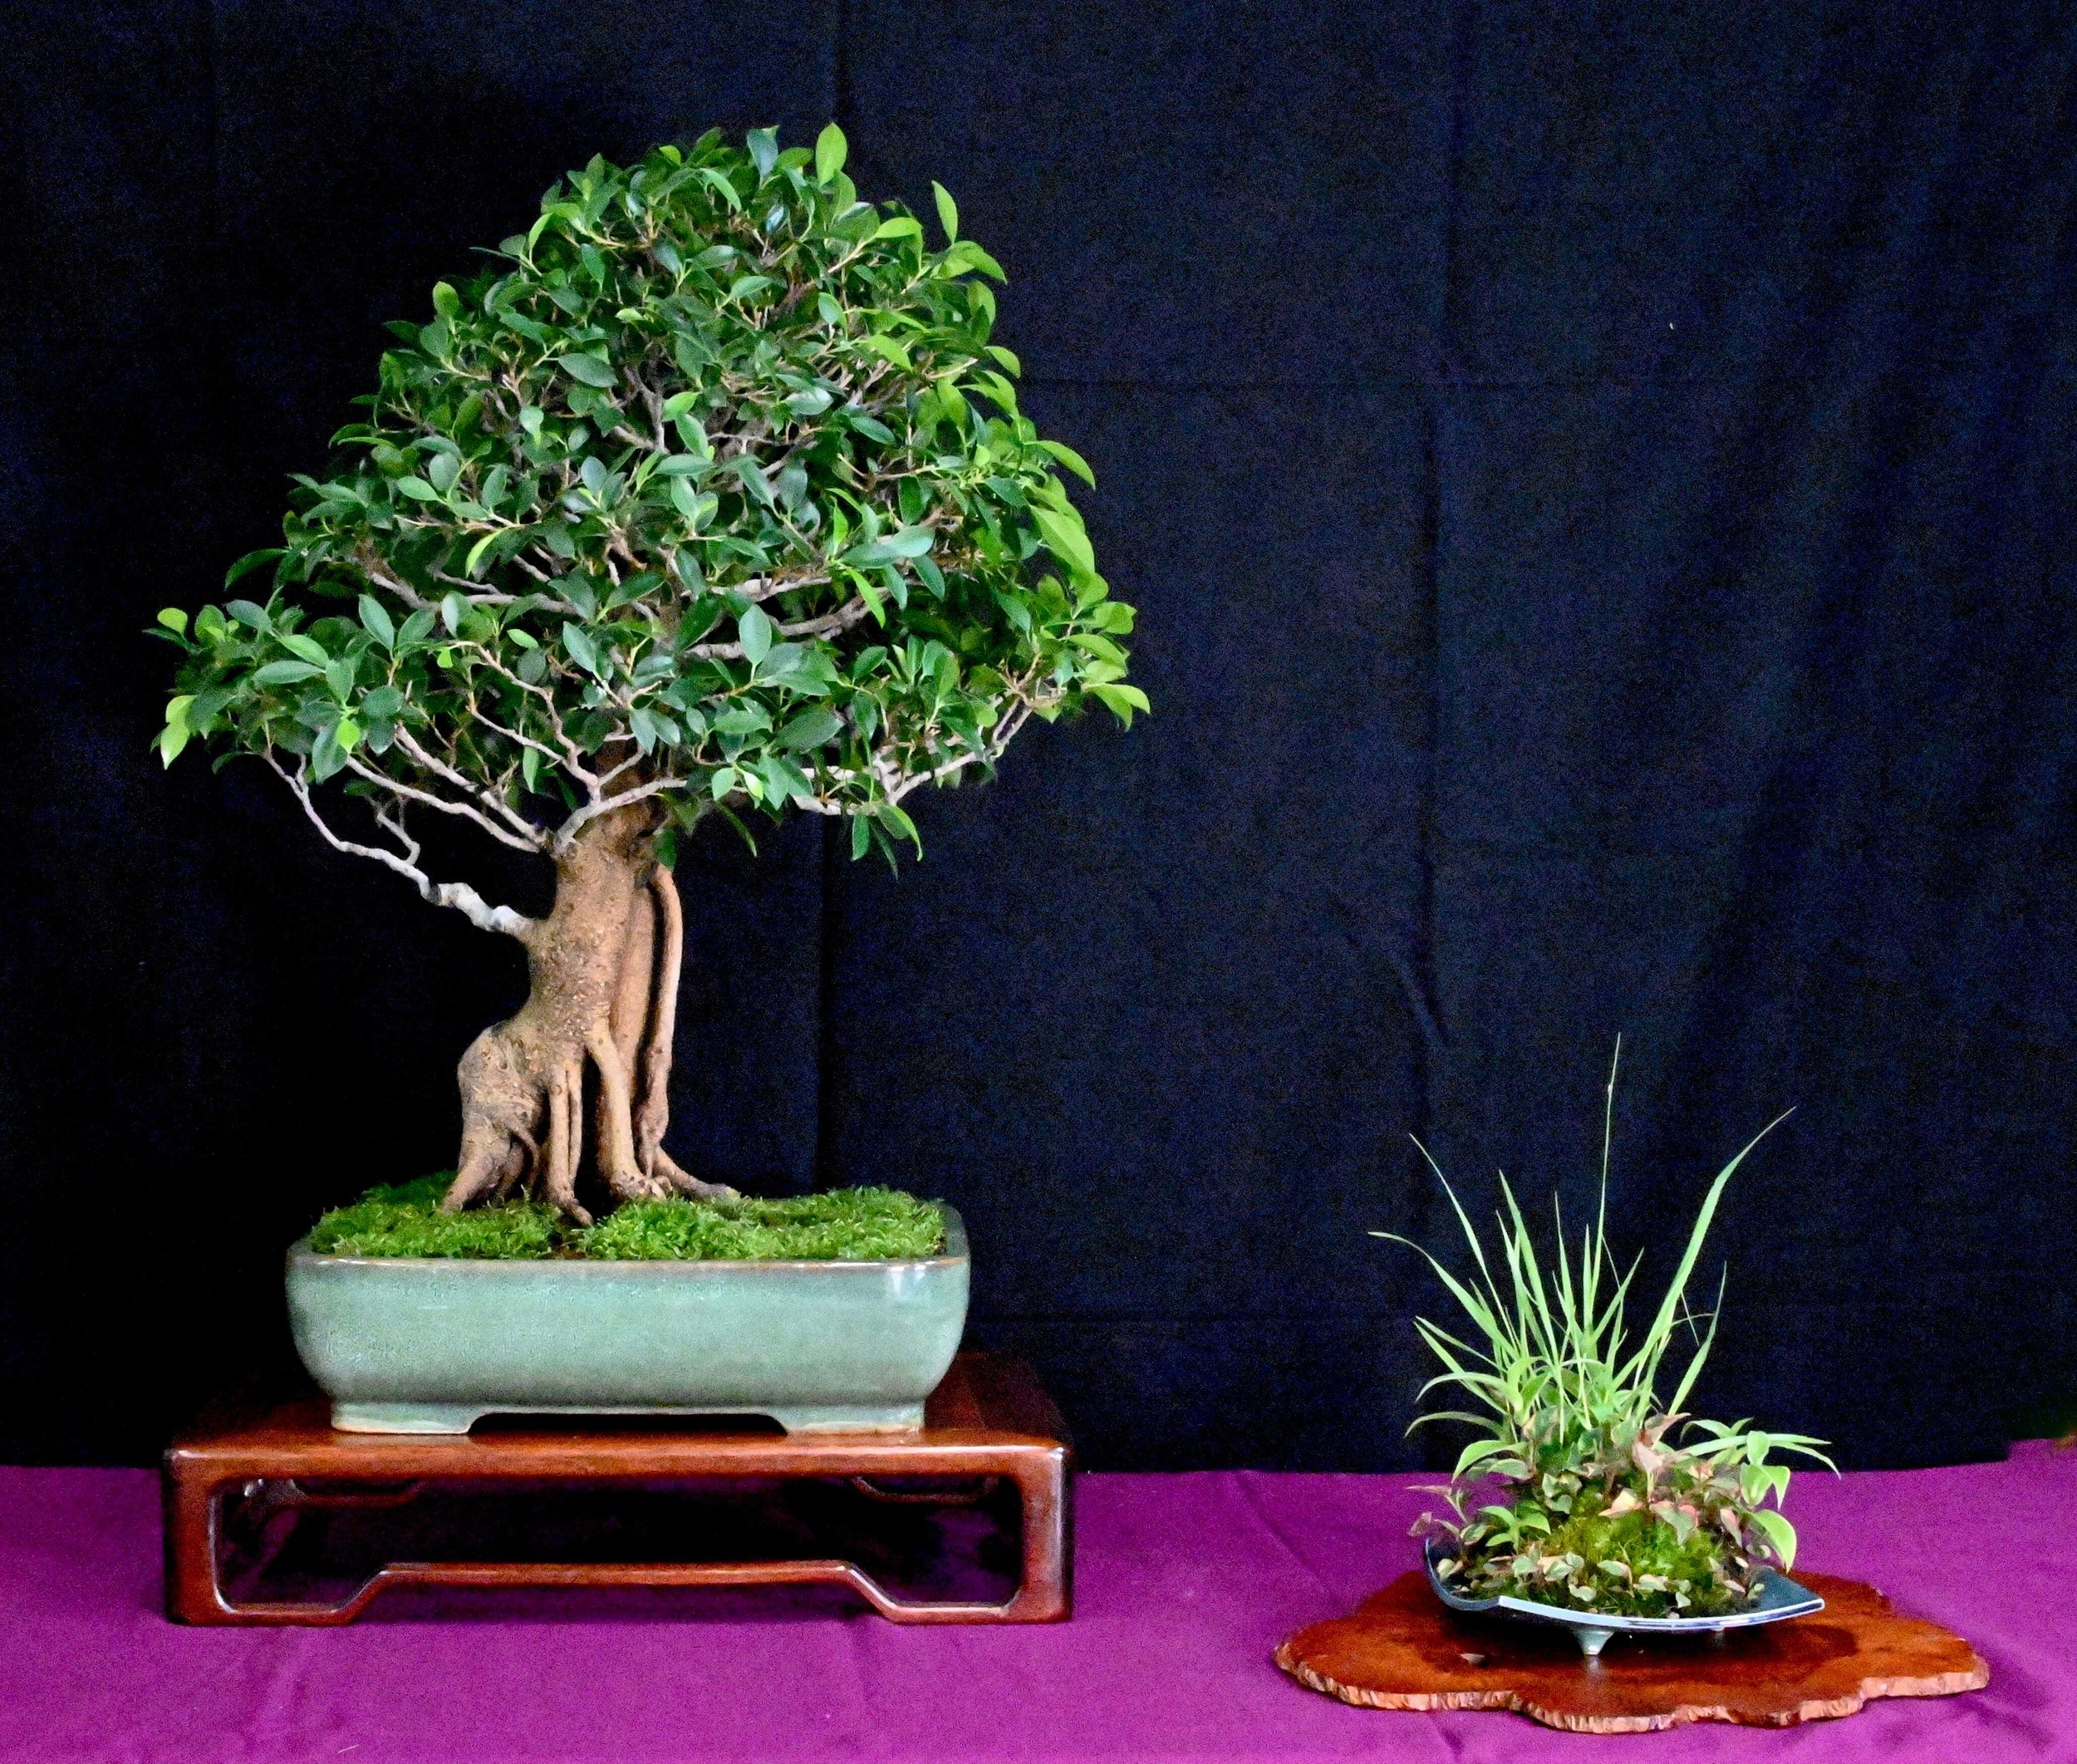 bonsai exhibit 11.jpeg